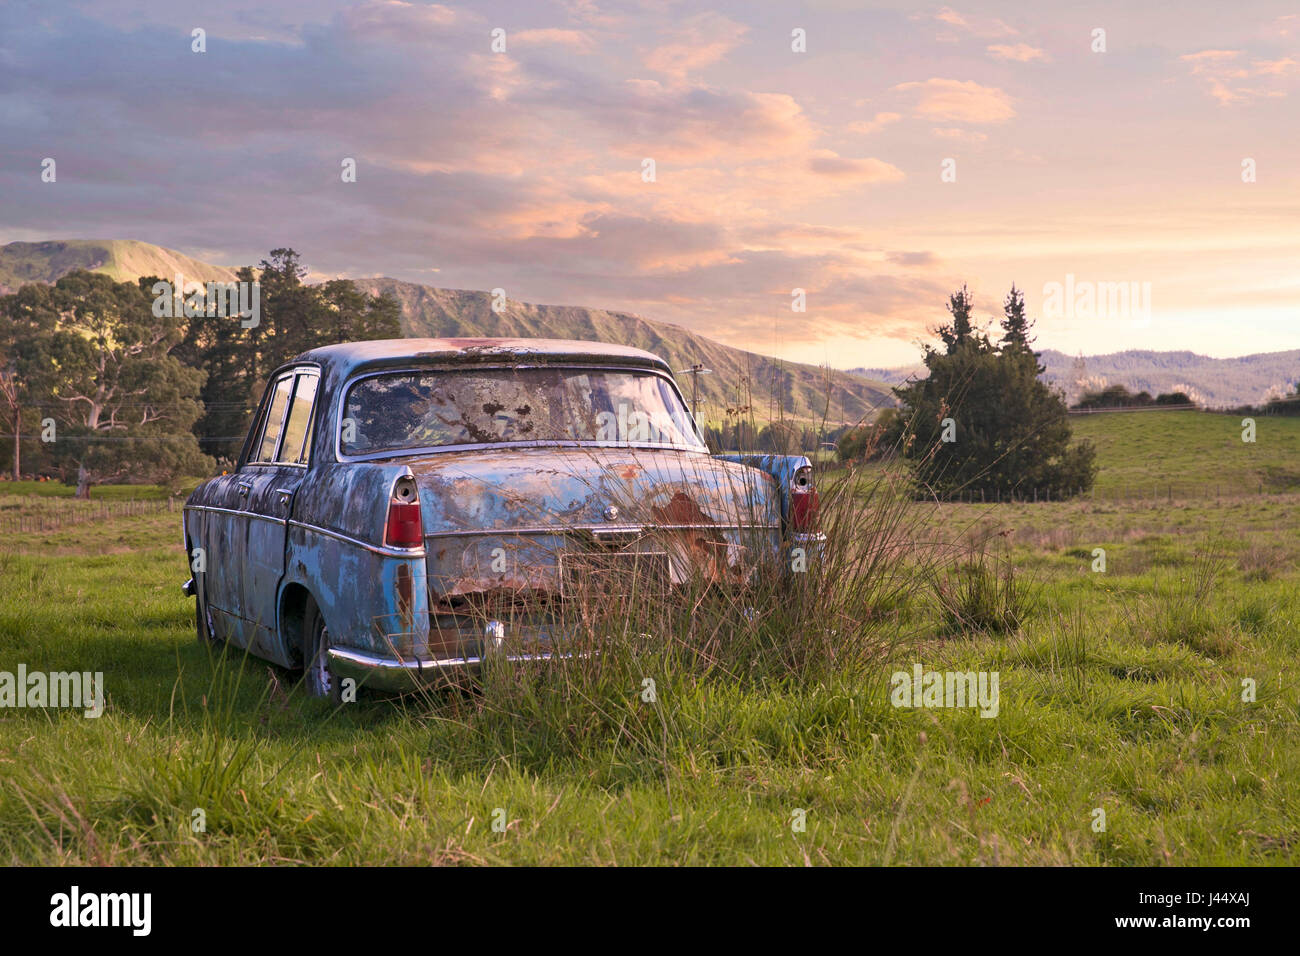 An old car deserted on wasteland and left to become overgrown with weeds - Stock Image